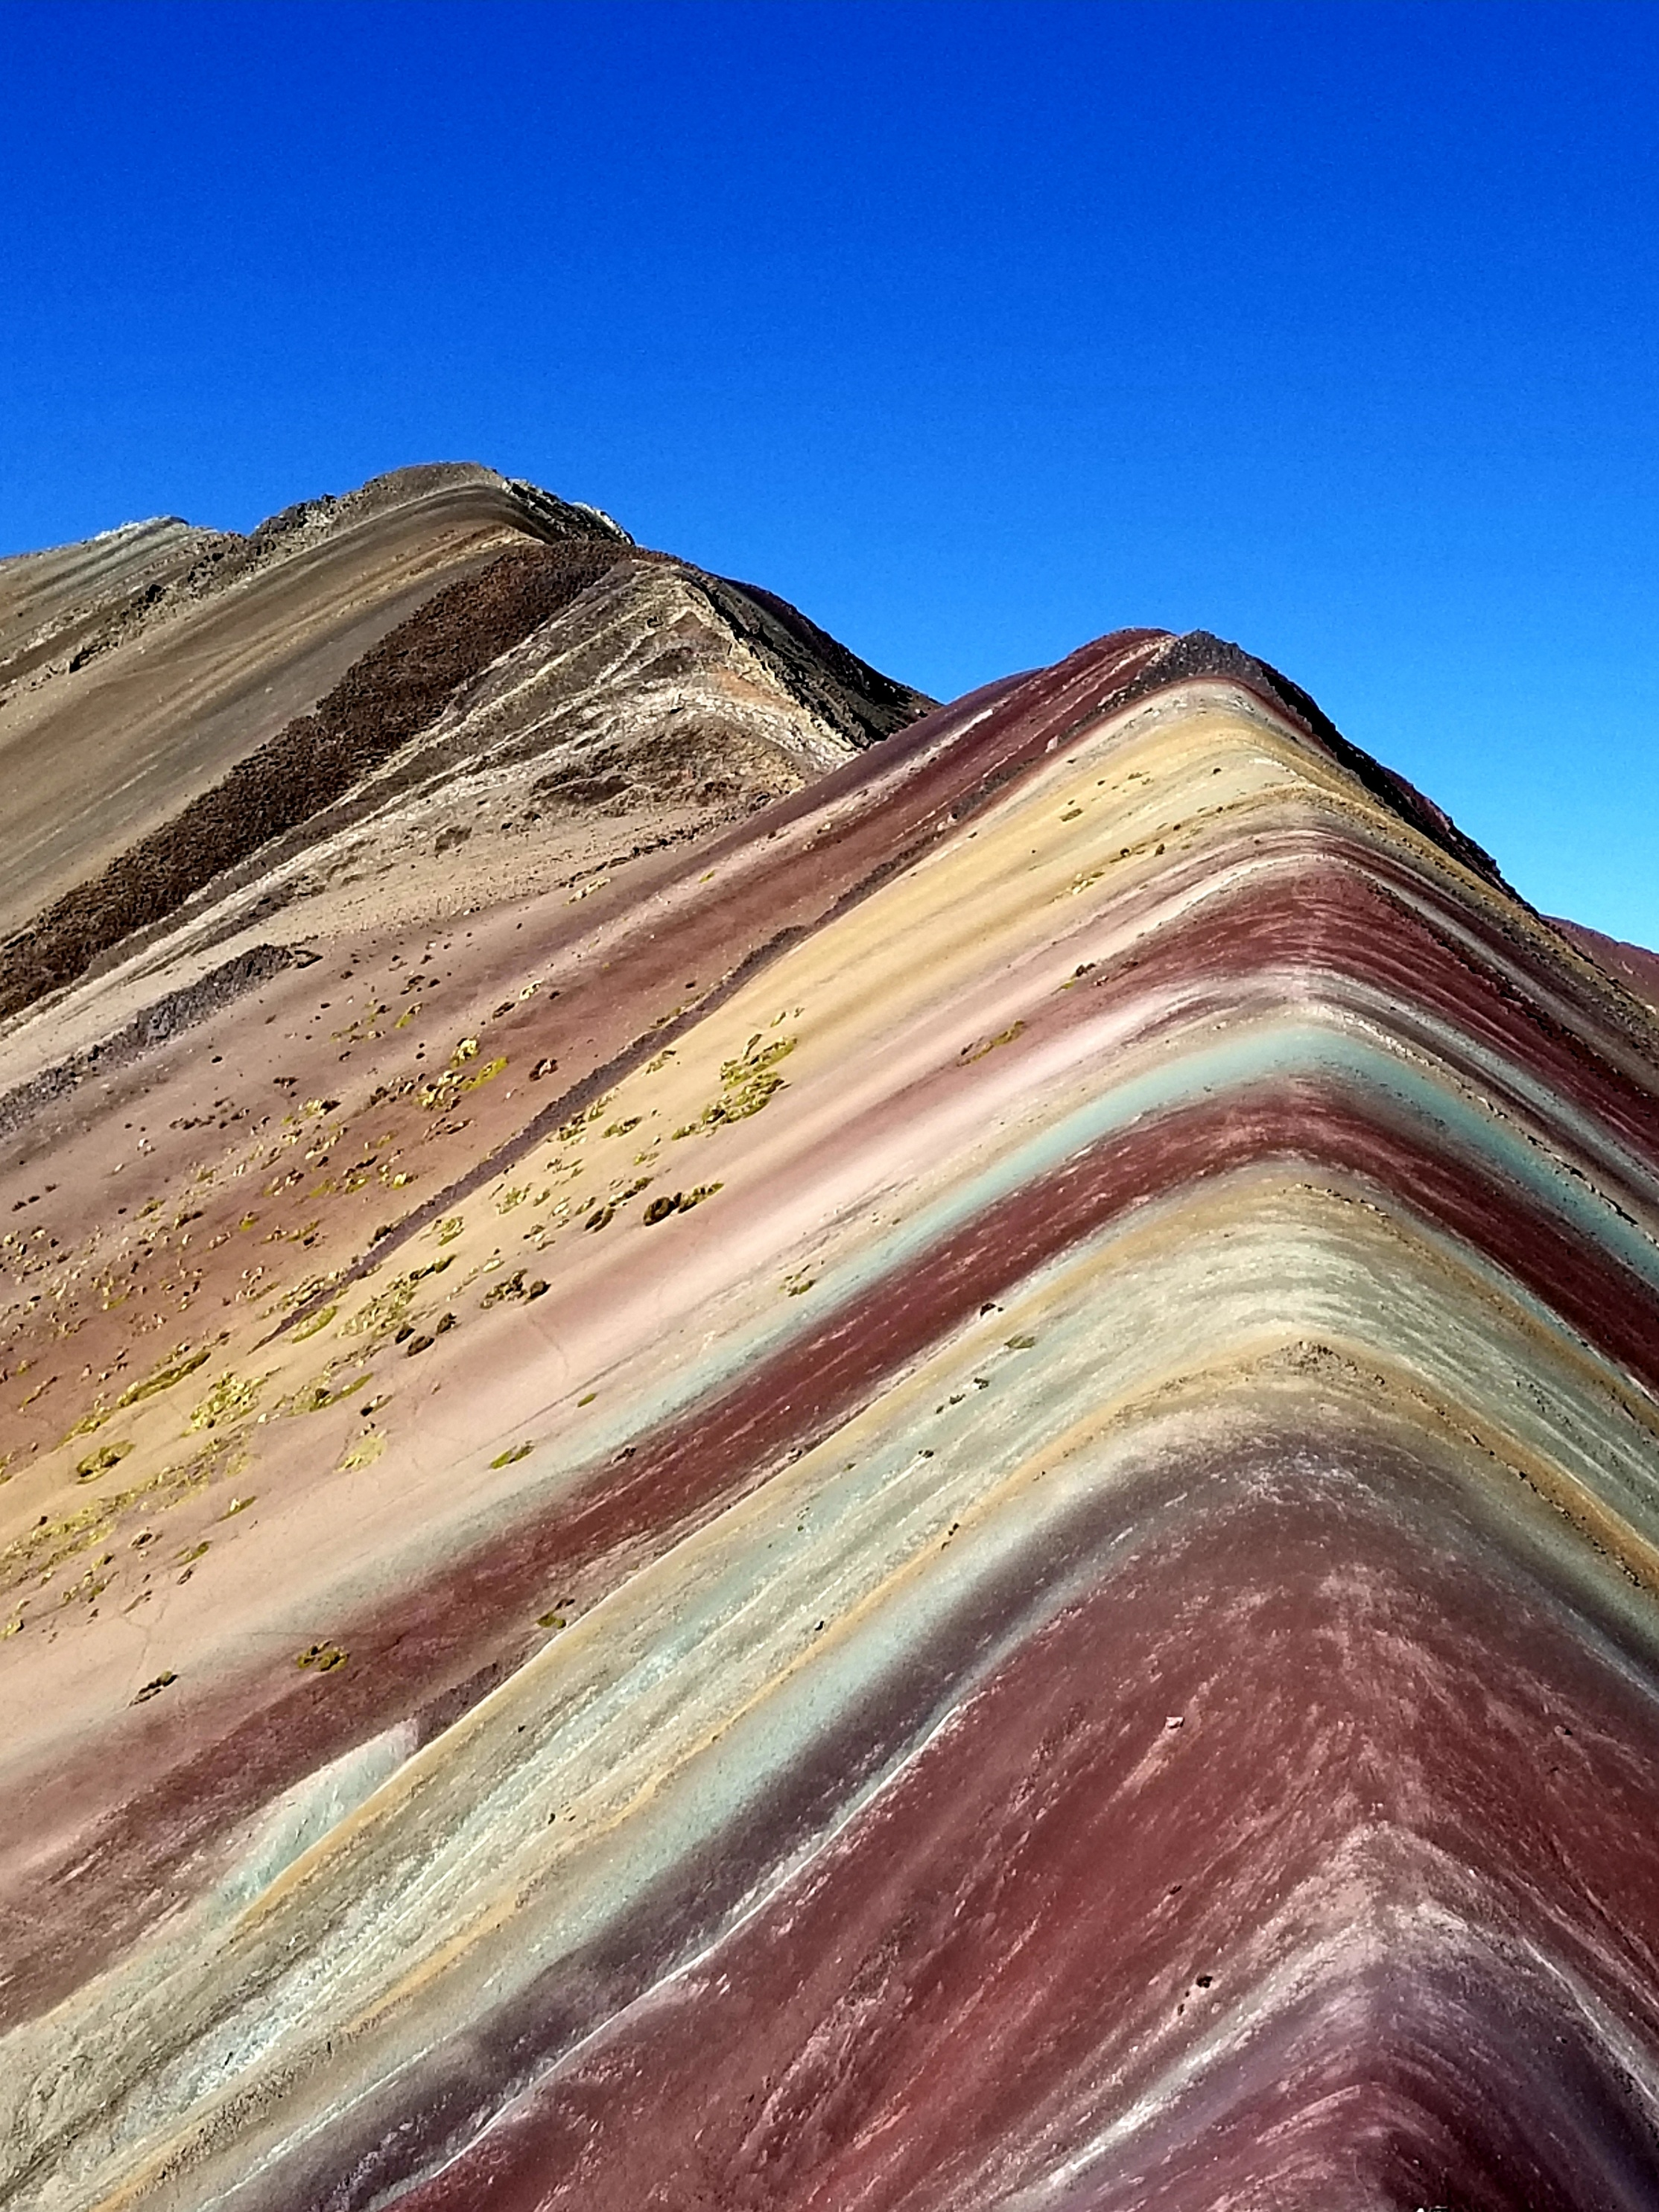 Easy to see the earth pigments in the Mountain of 7 Colors, aka Rainbow Mountain, Peru, July 2019.